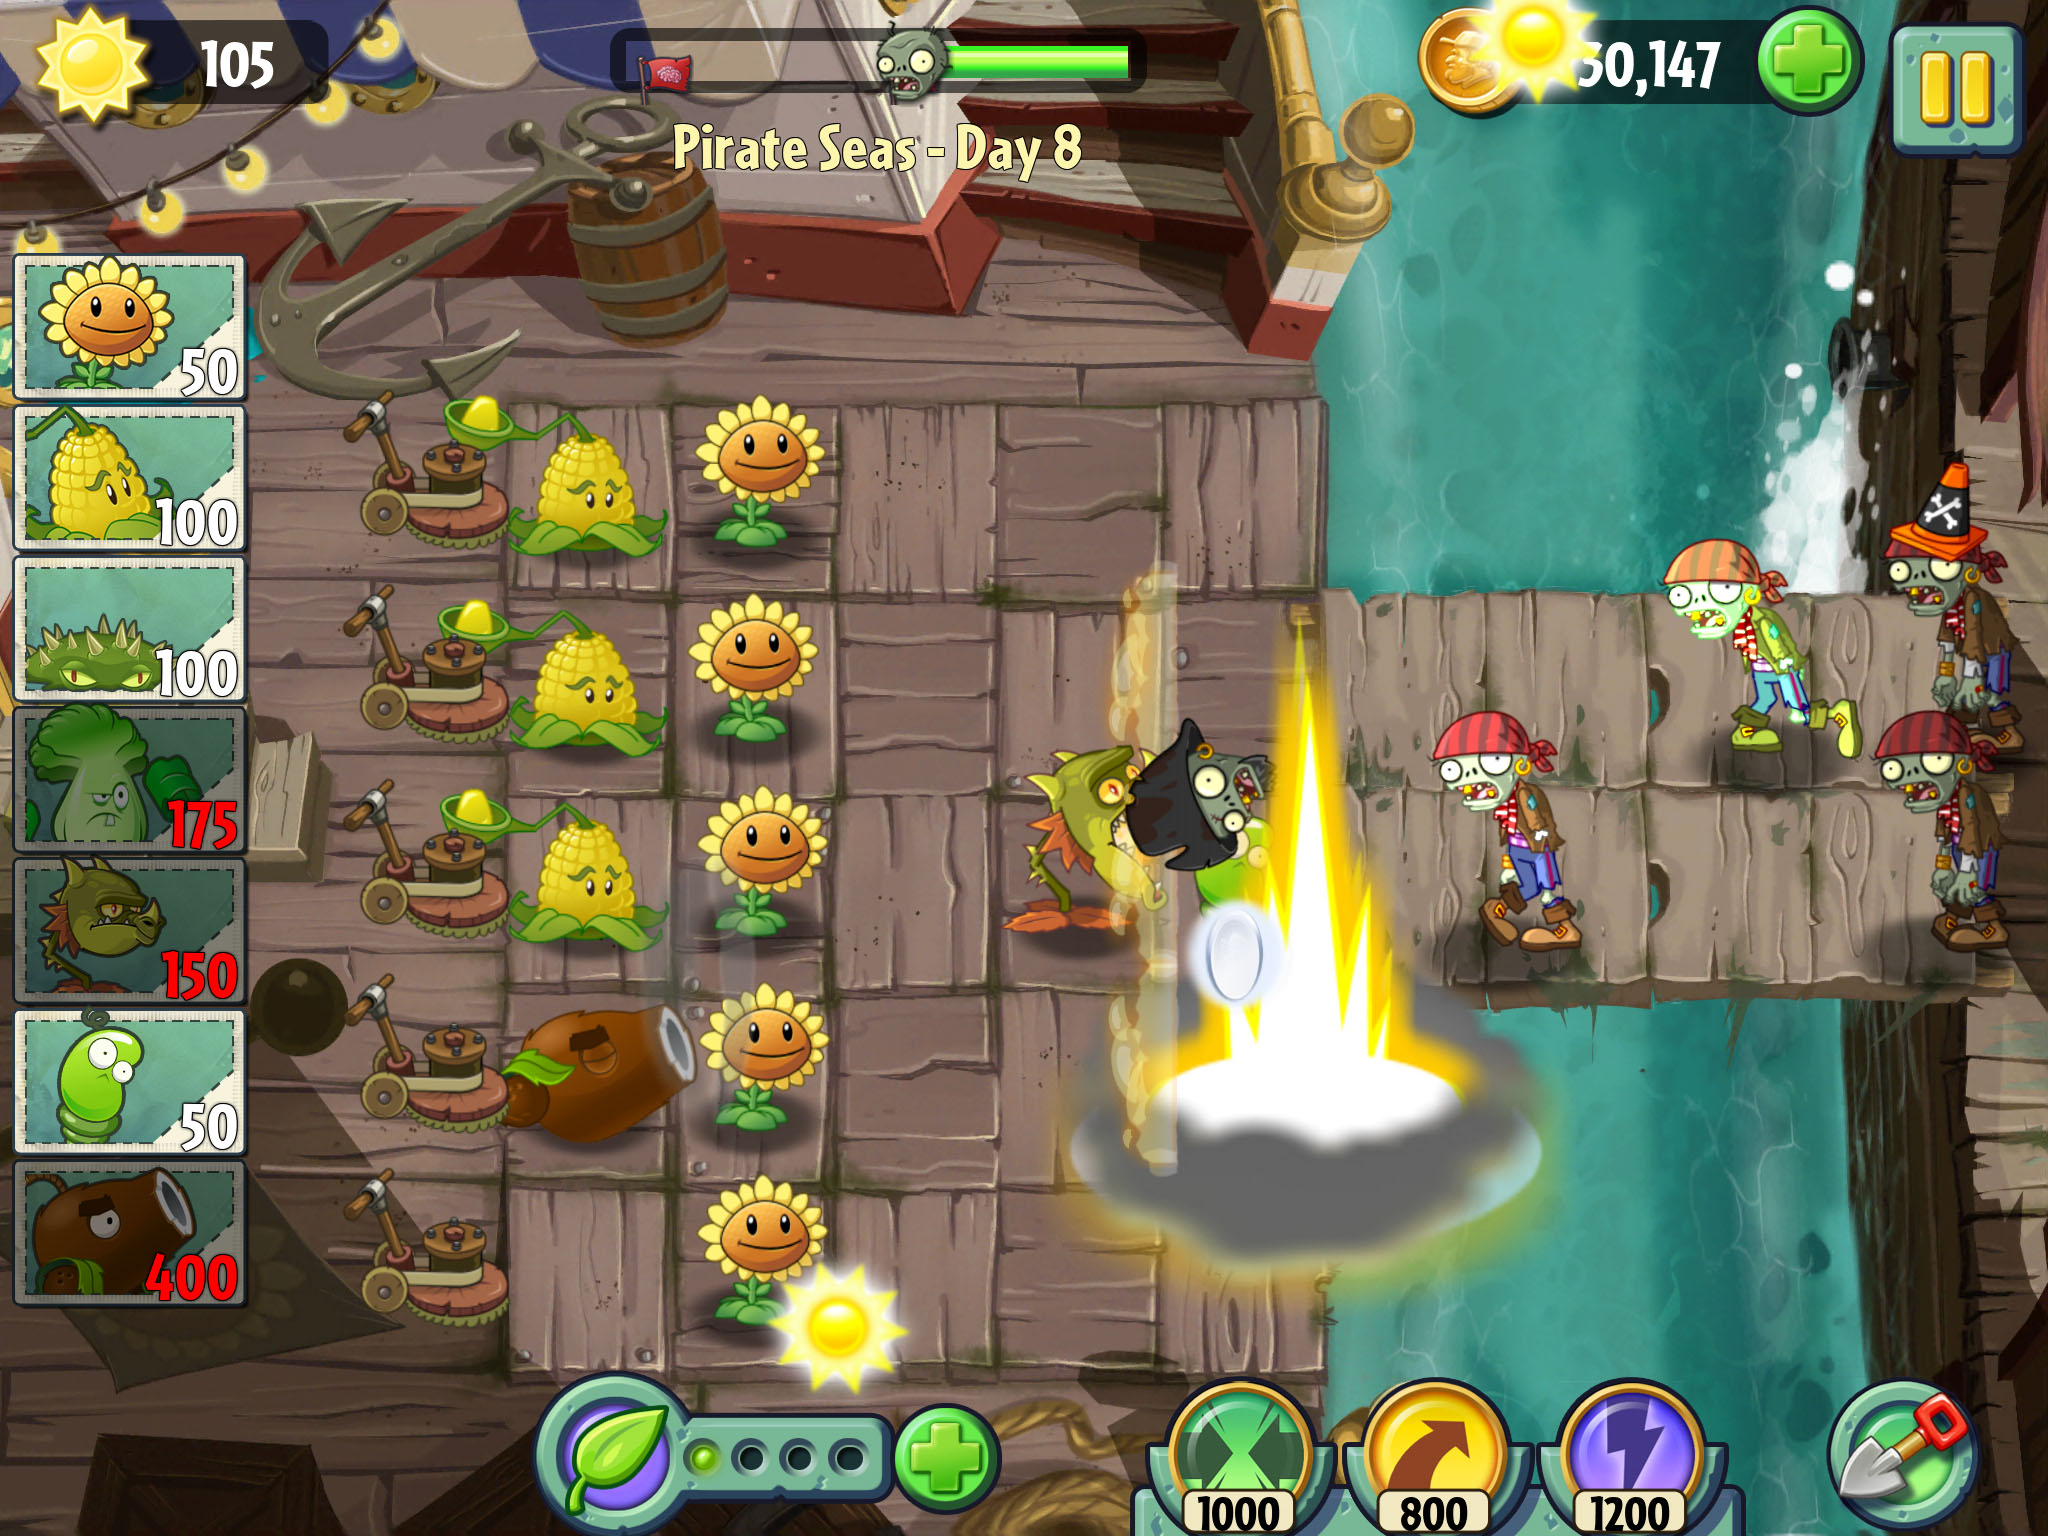 Plants vs. Zombies 2 delayed, coming later this summer